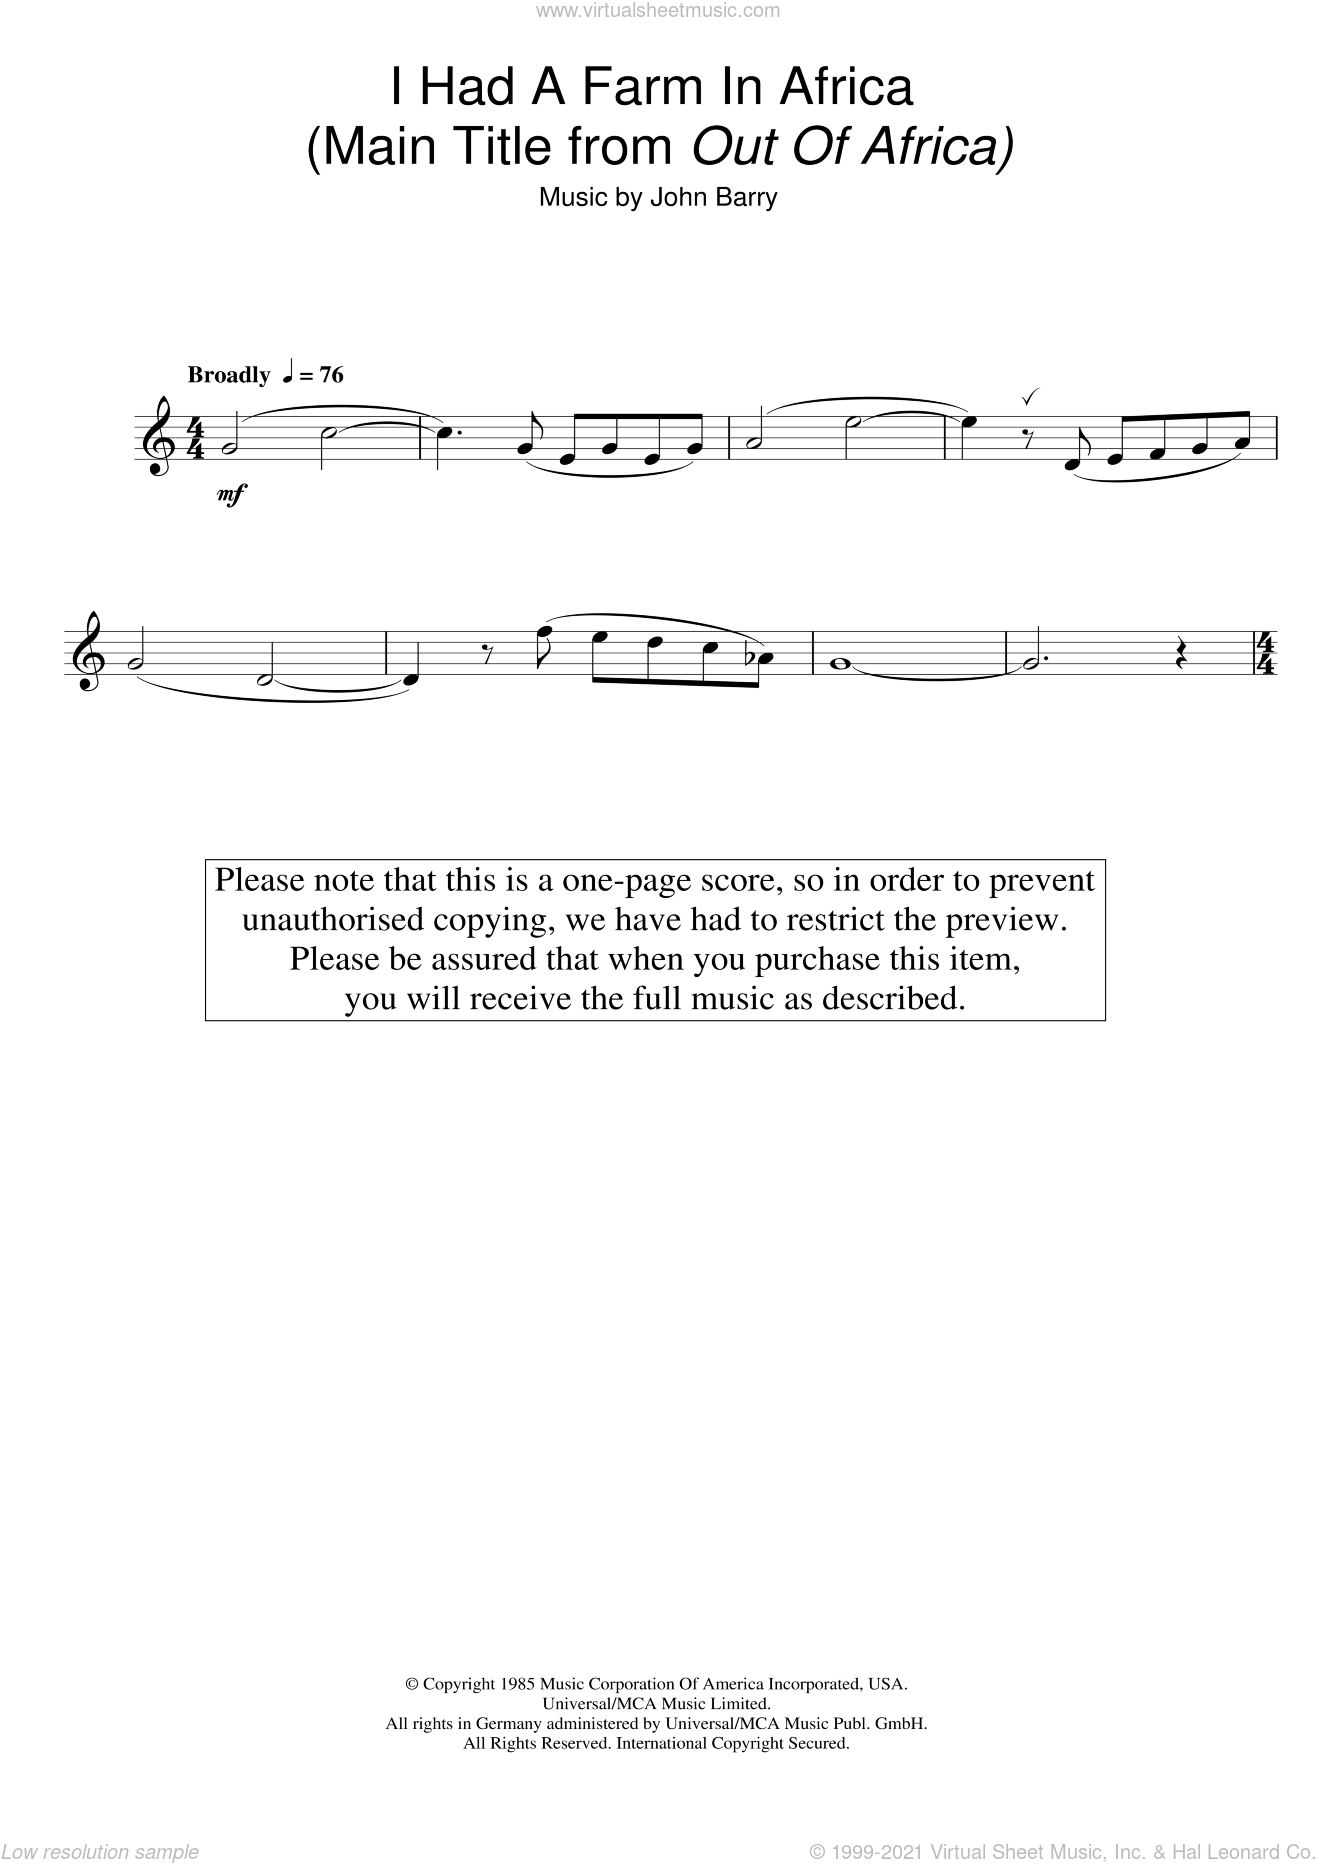 I Had A Farm In Africa (Main Title from Out Of Africa) sheet music for flute solo by John Barry, intermediate skill level